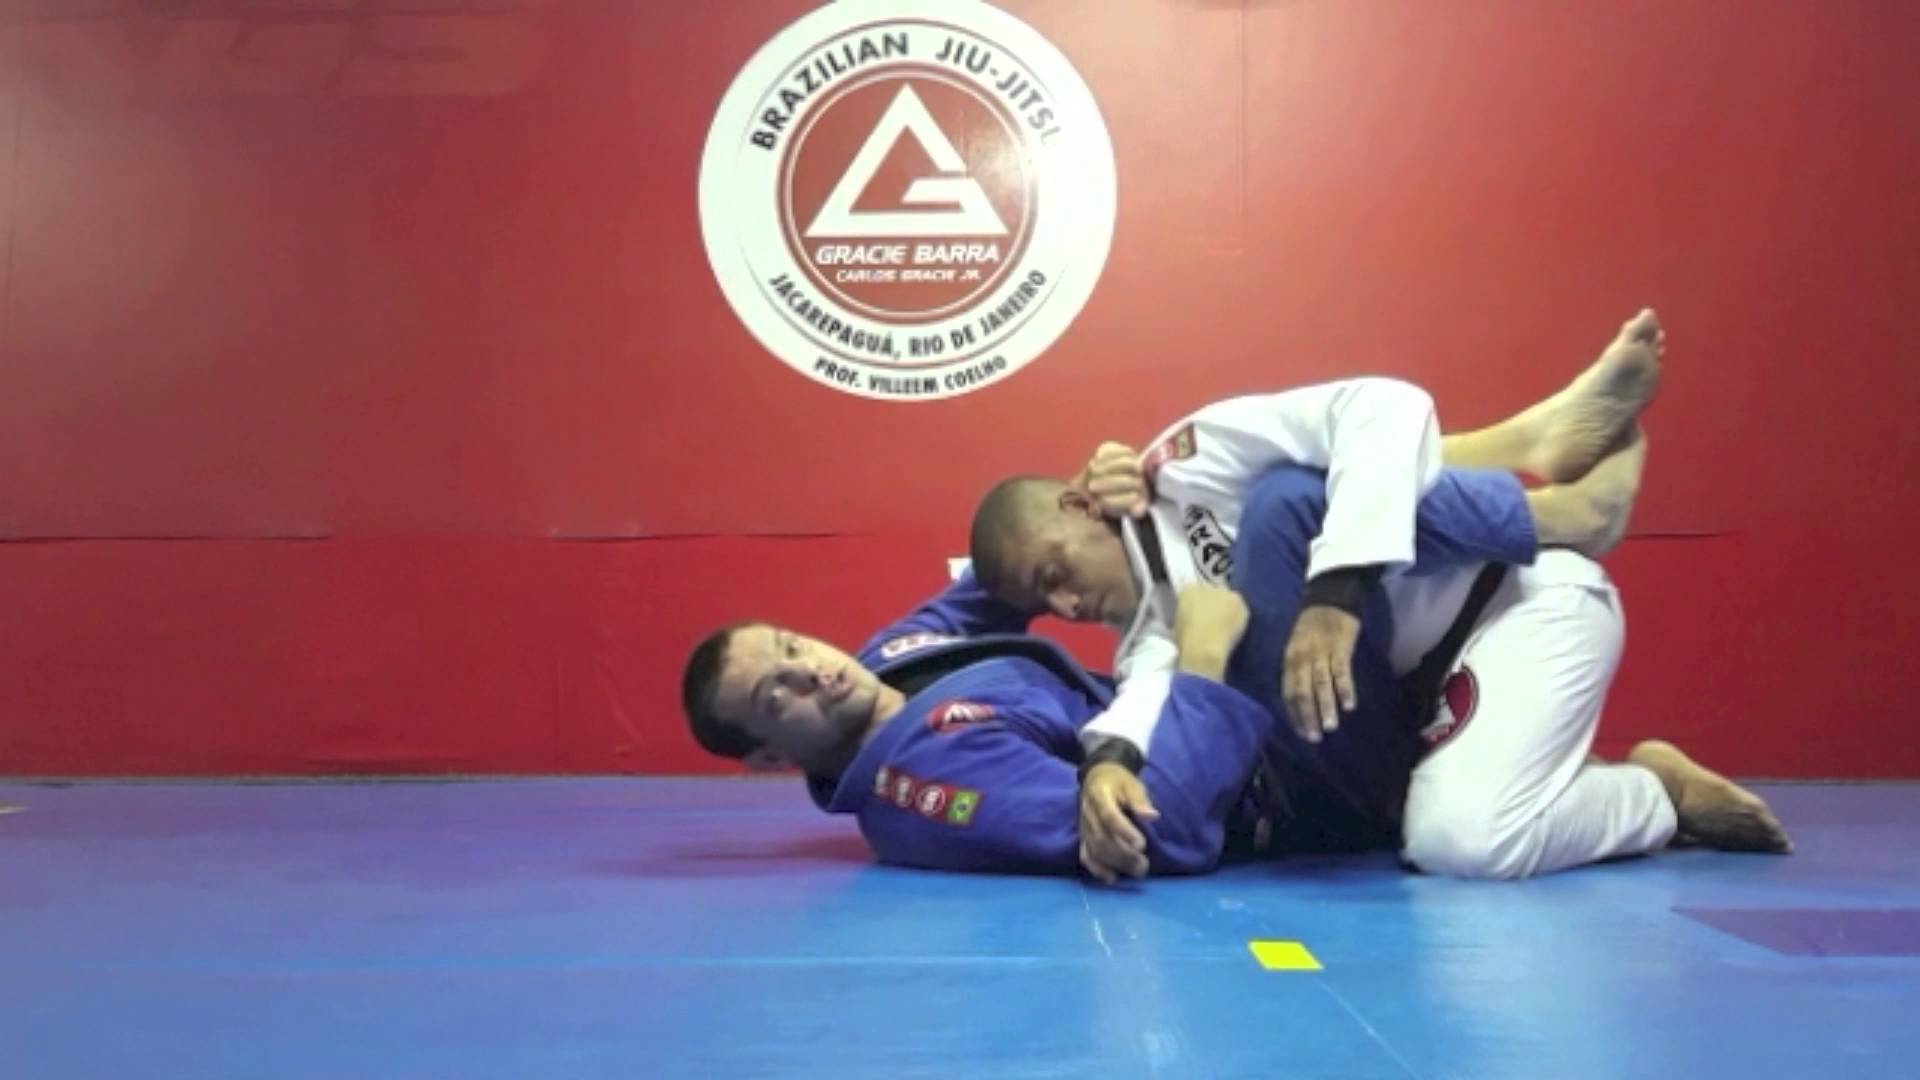 Closed guard Armbar with lapel + Choke and sweep